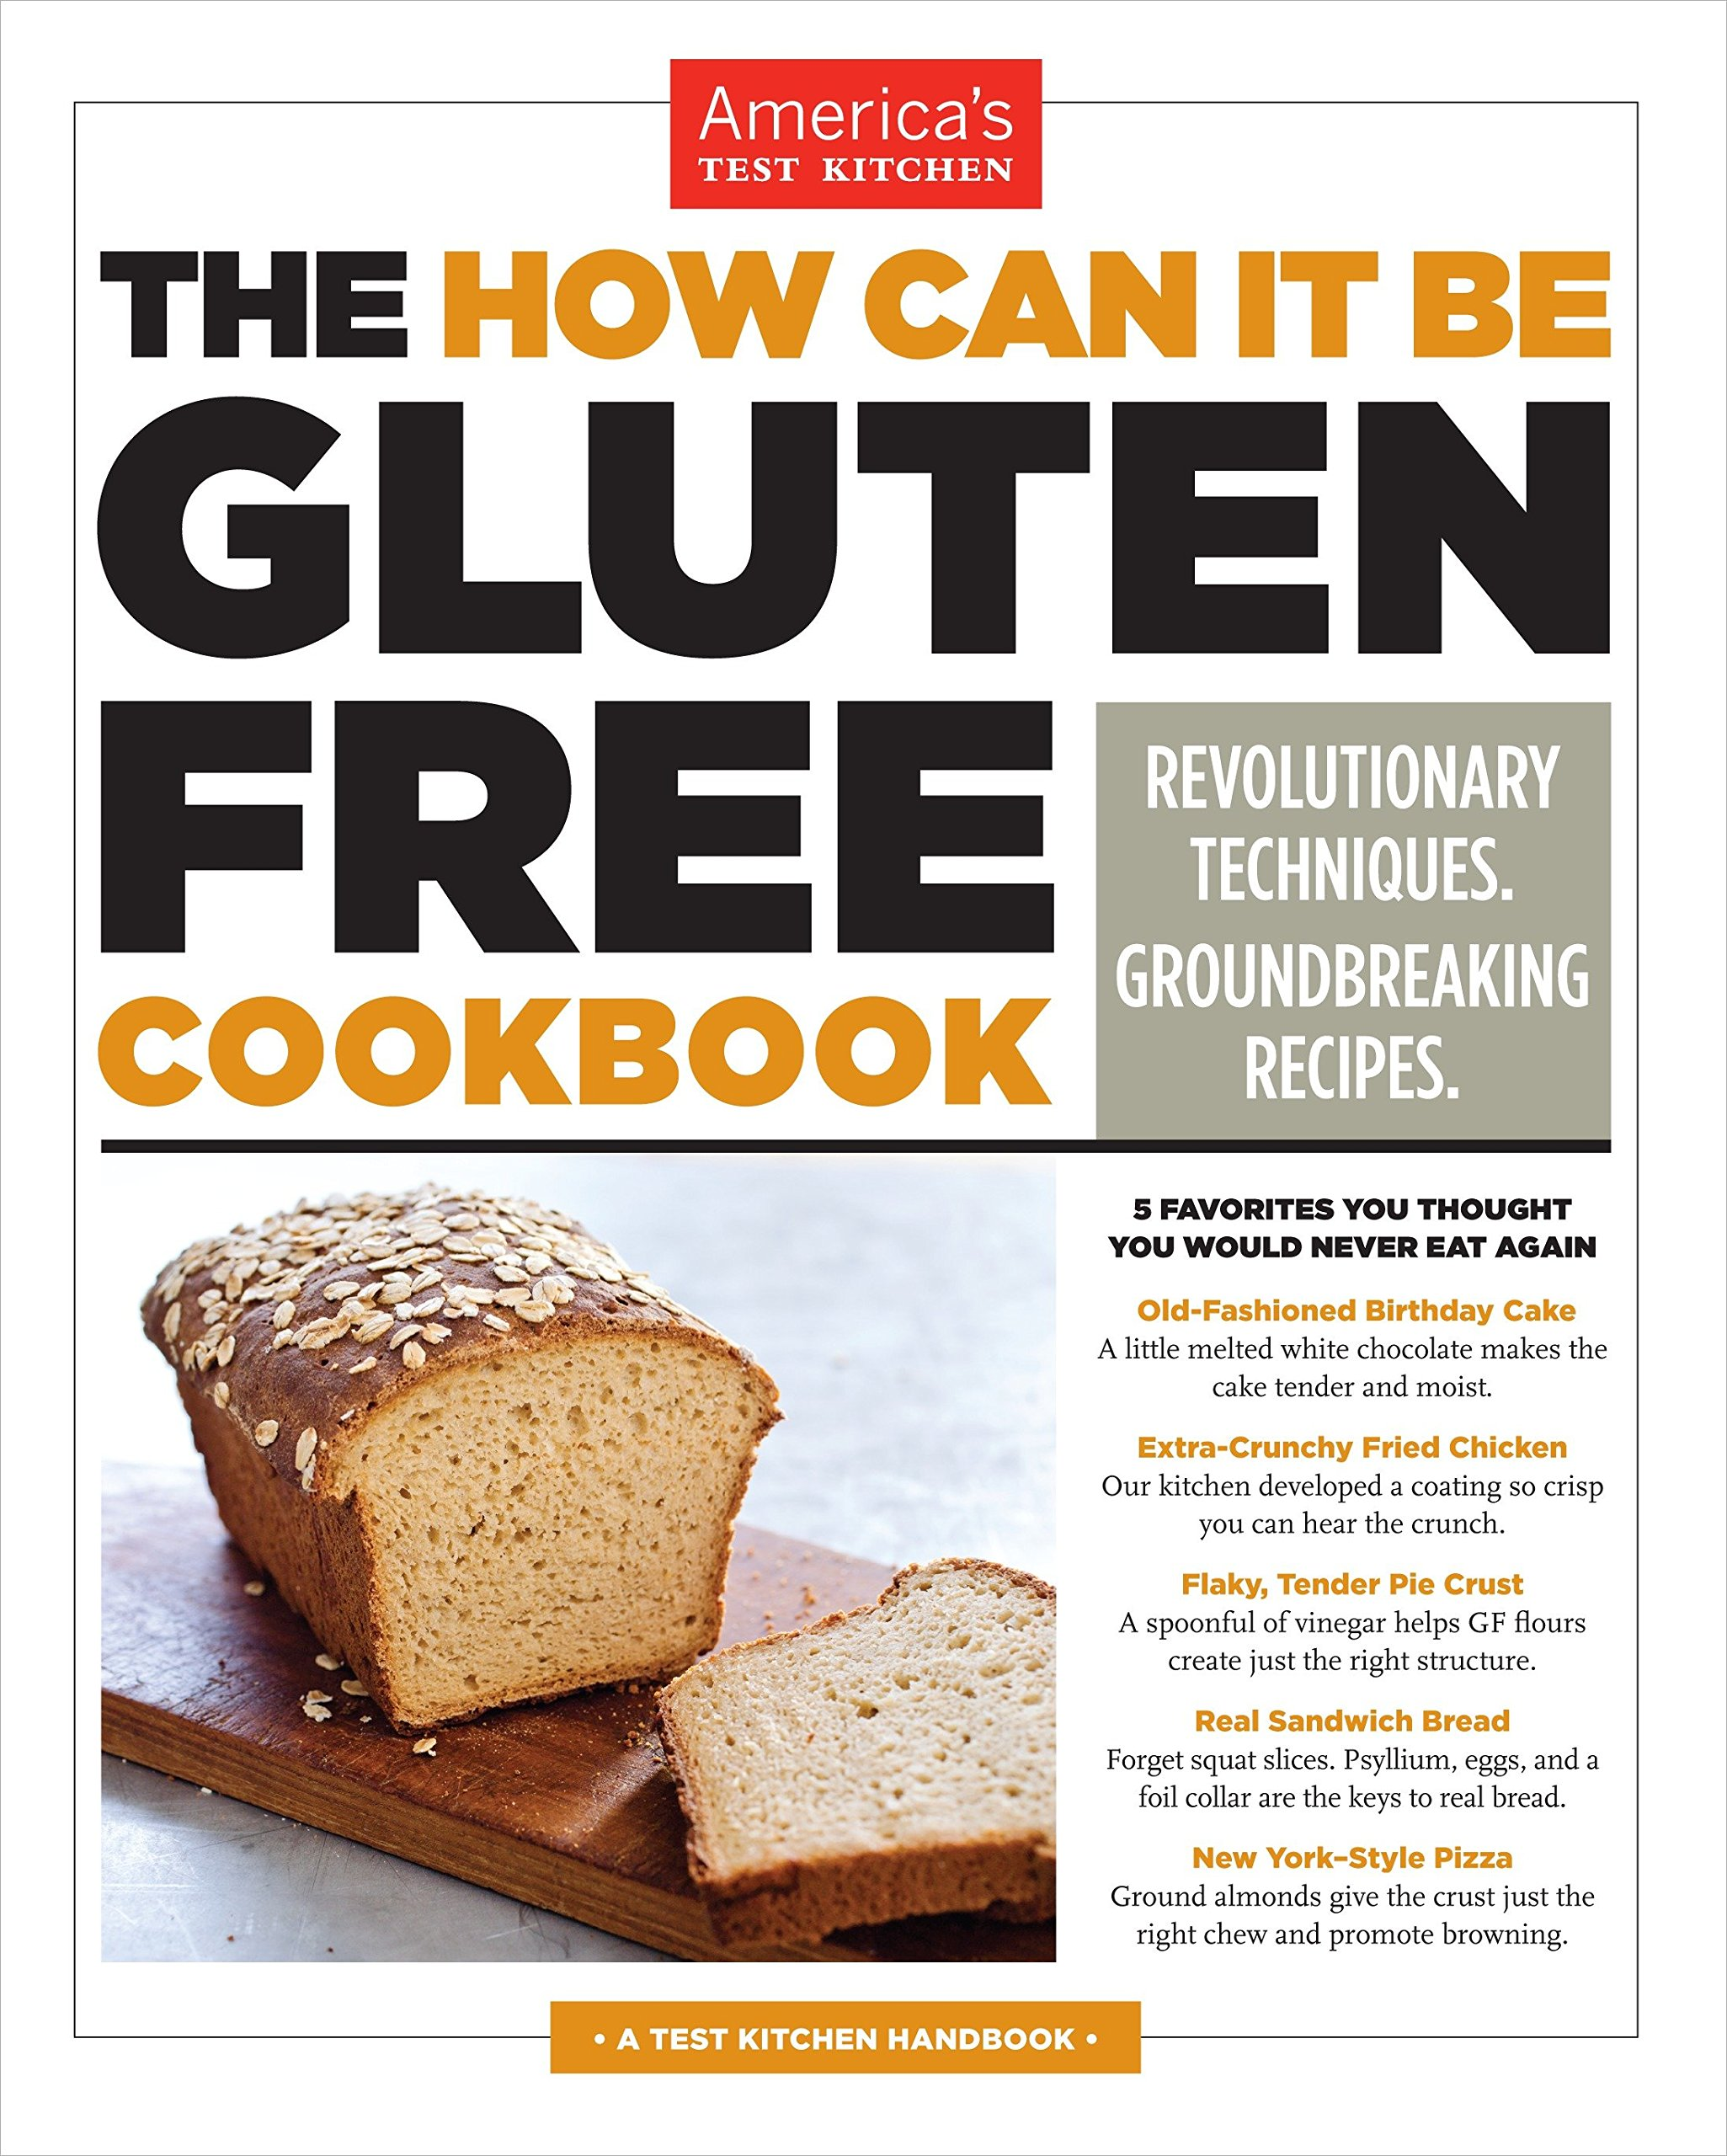 The How Can It Be Gluten Free Cookbook: Revolutionary Techniques. Groundbreaking Recipes. by America s Test Kitchen